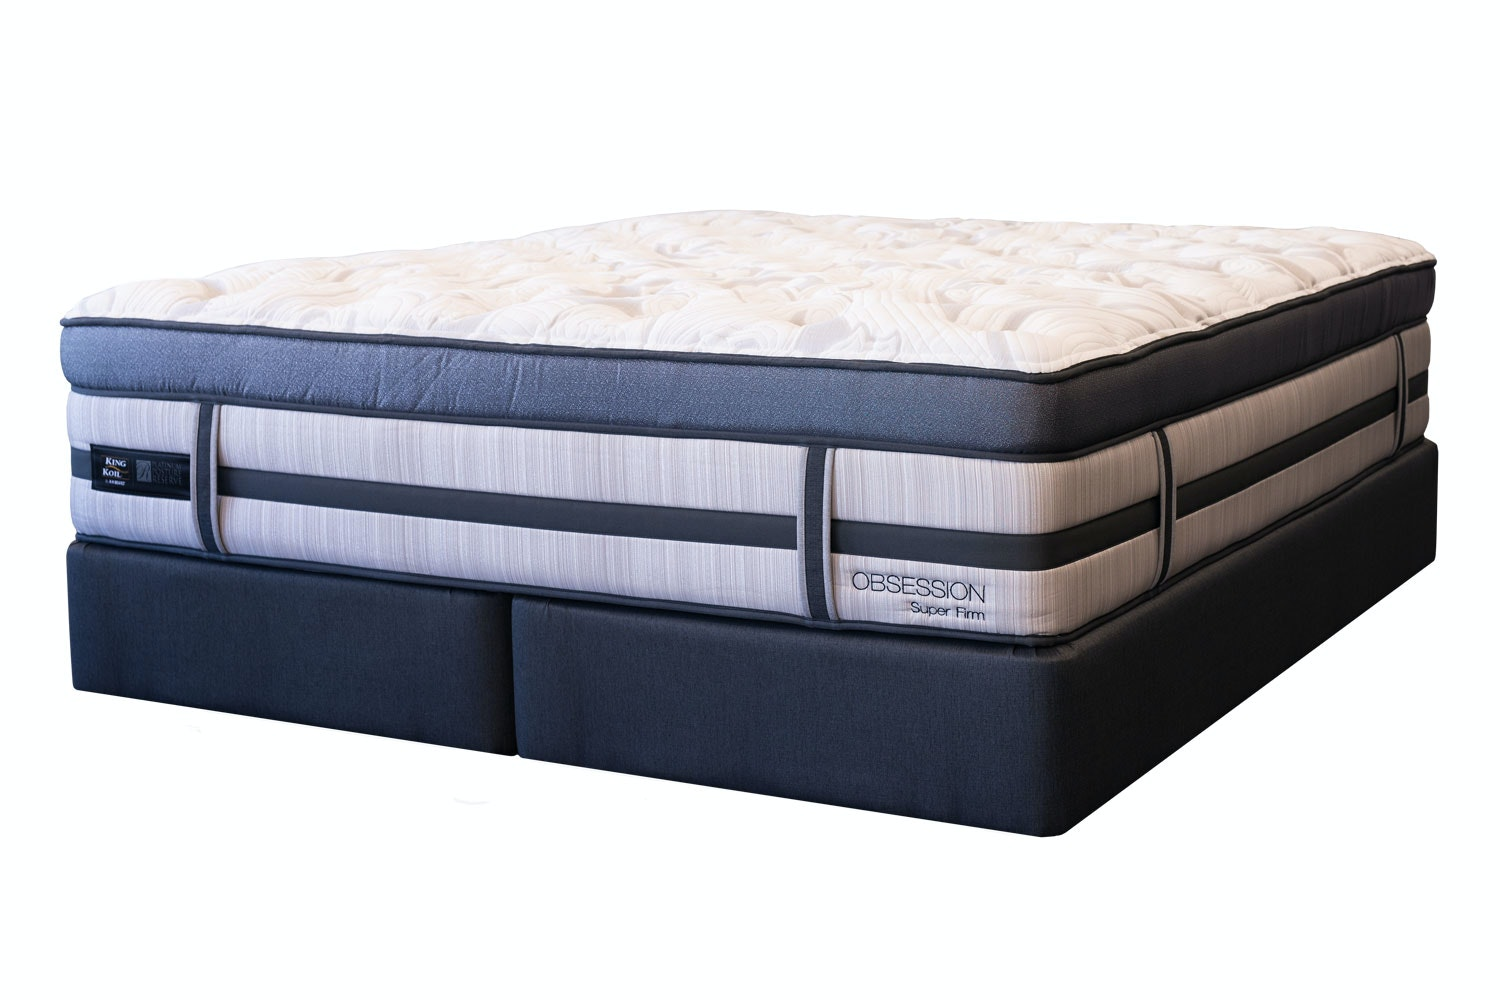 Obsession Super Firm Long Single Bed by King Koil